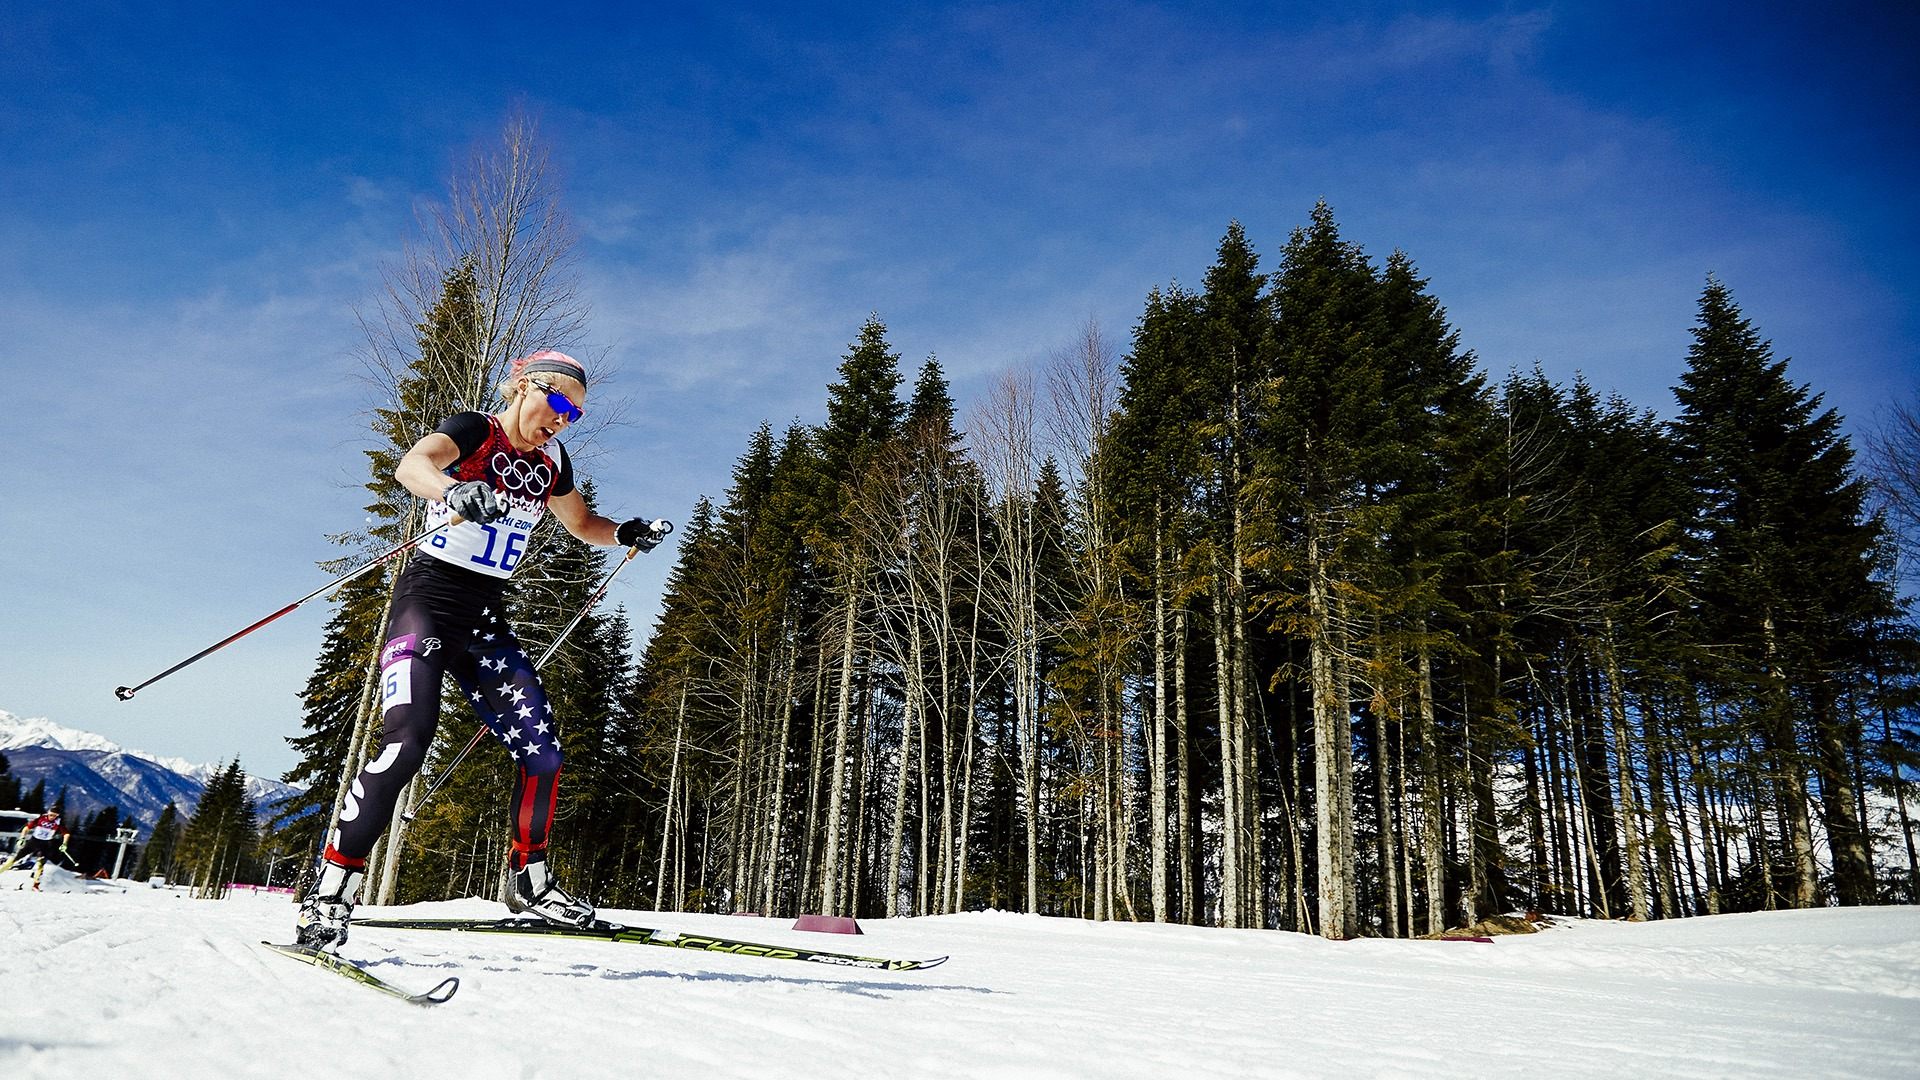 Kikkan Randall pushes hard as she skis the course